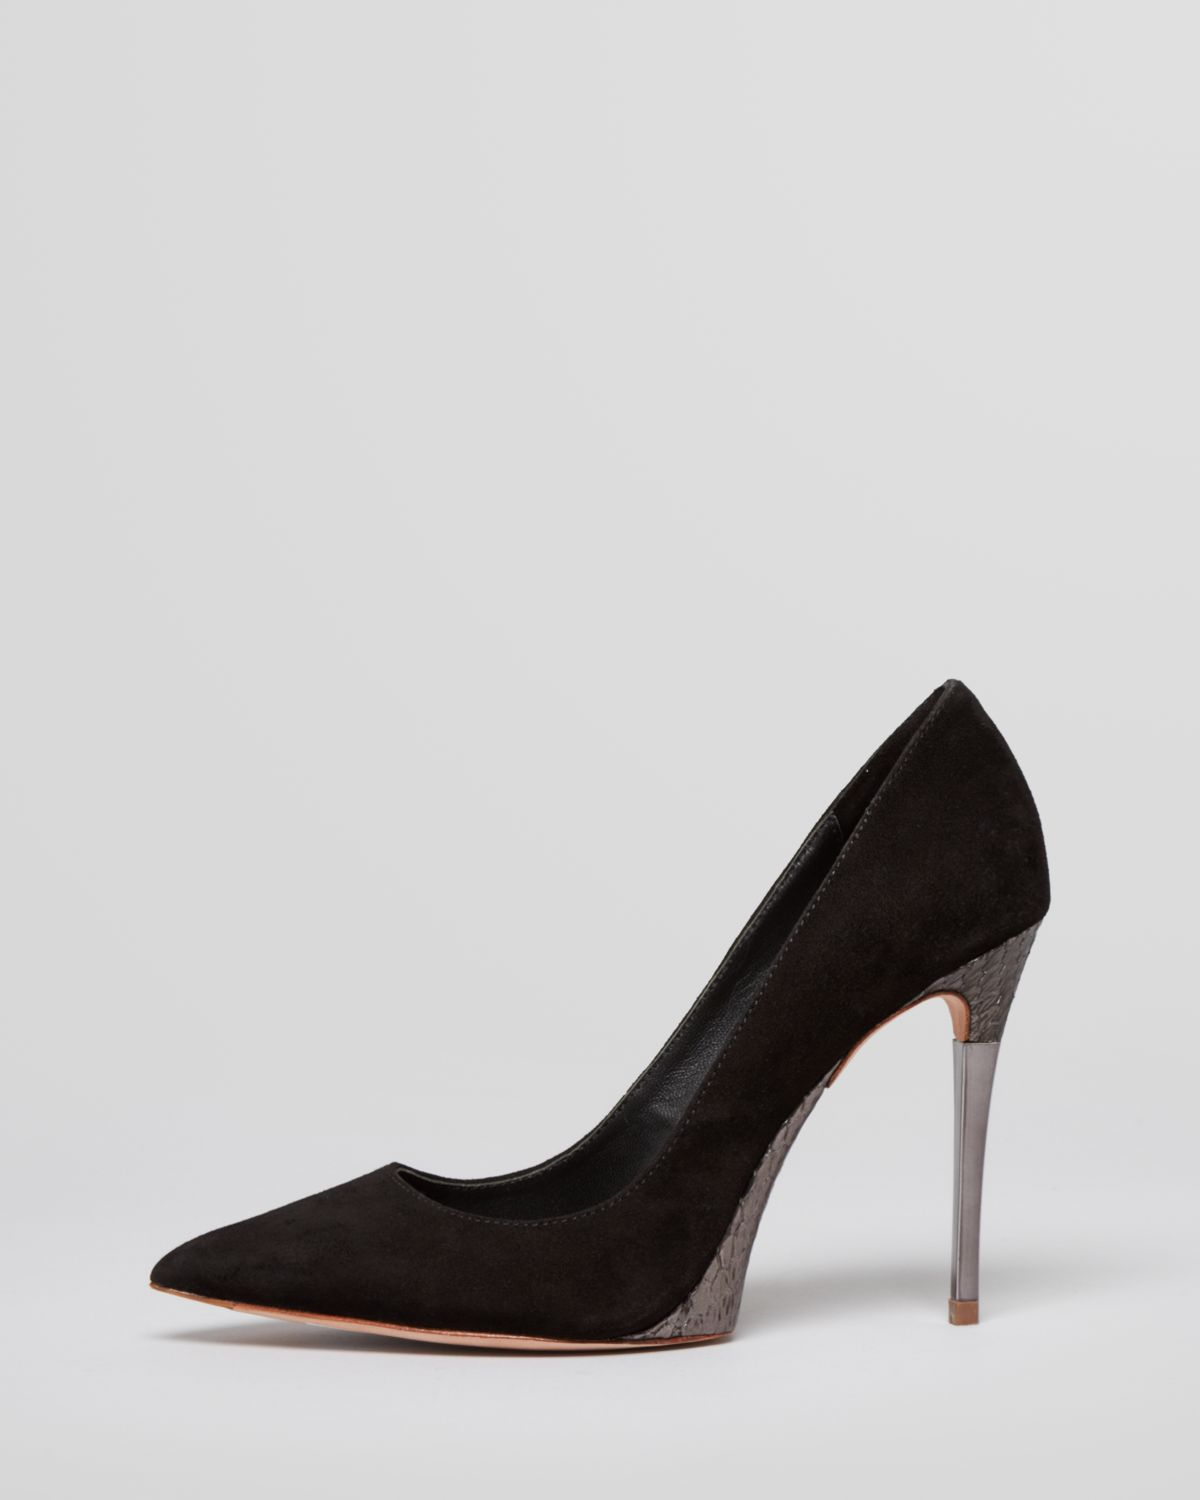 390e76857f8 Gallery. Previously sold at  Bloomingdale s · Women s Christian Louboutin  Plato Women s Peep Toe Heels ...